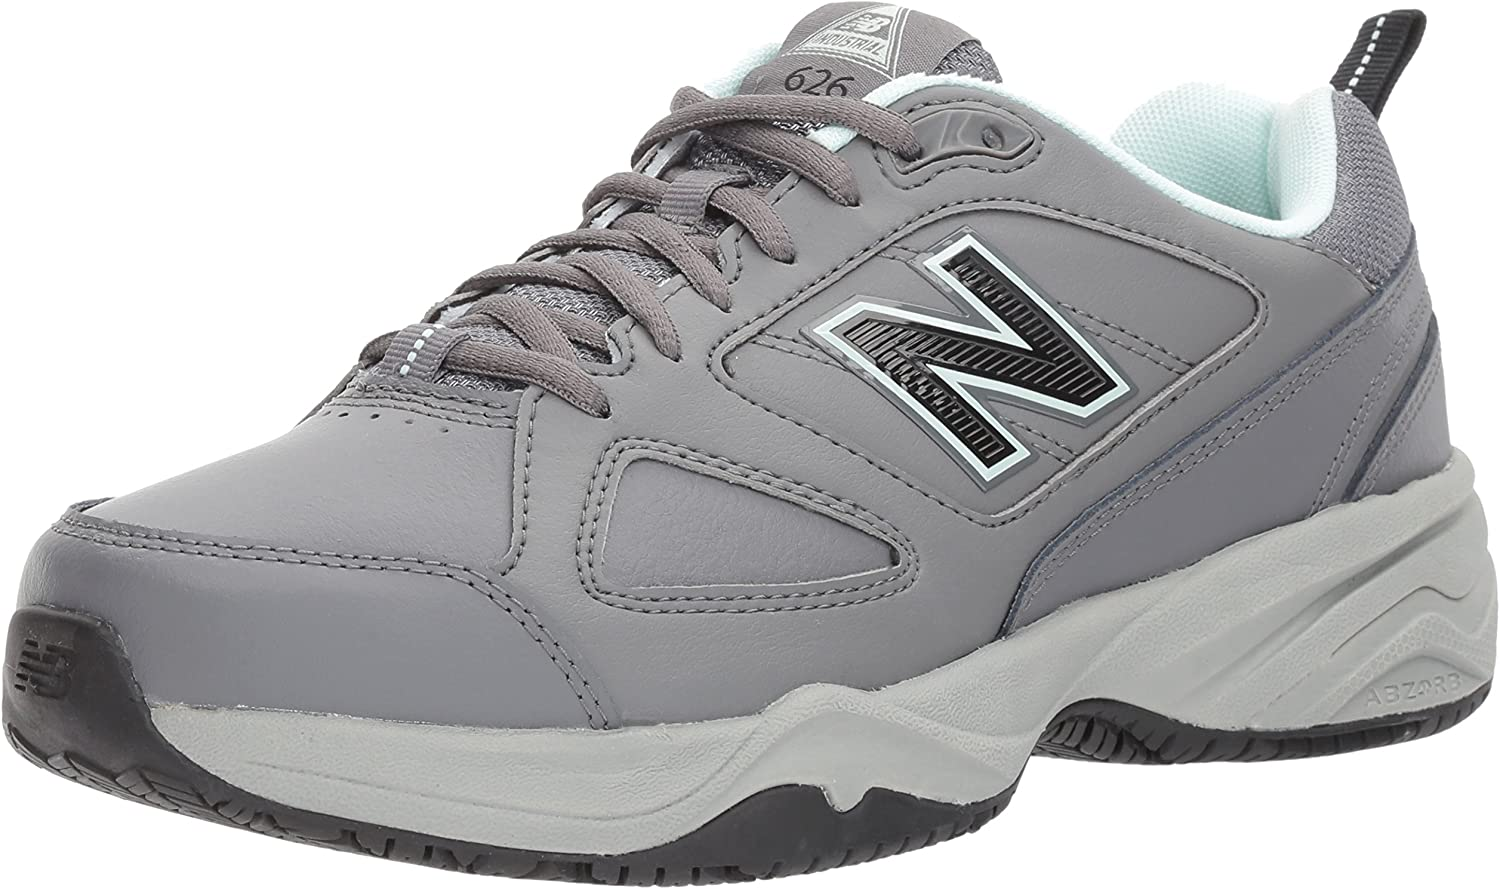 New Balance Women's WID626v2 Work Training shoes